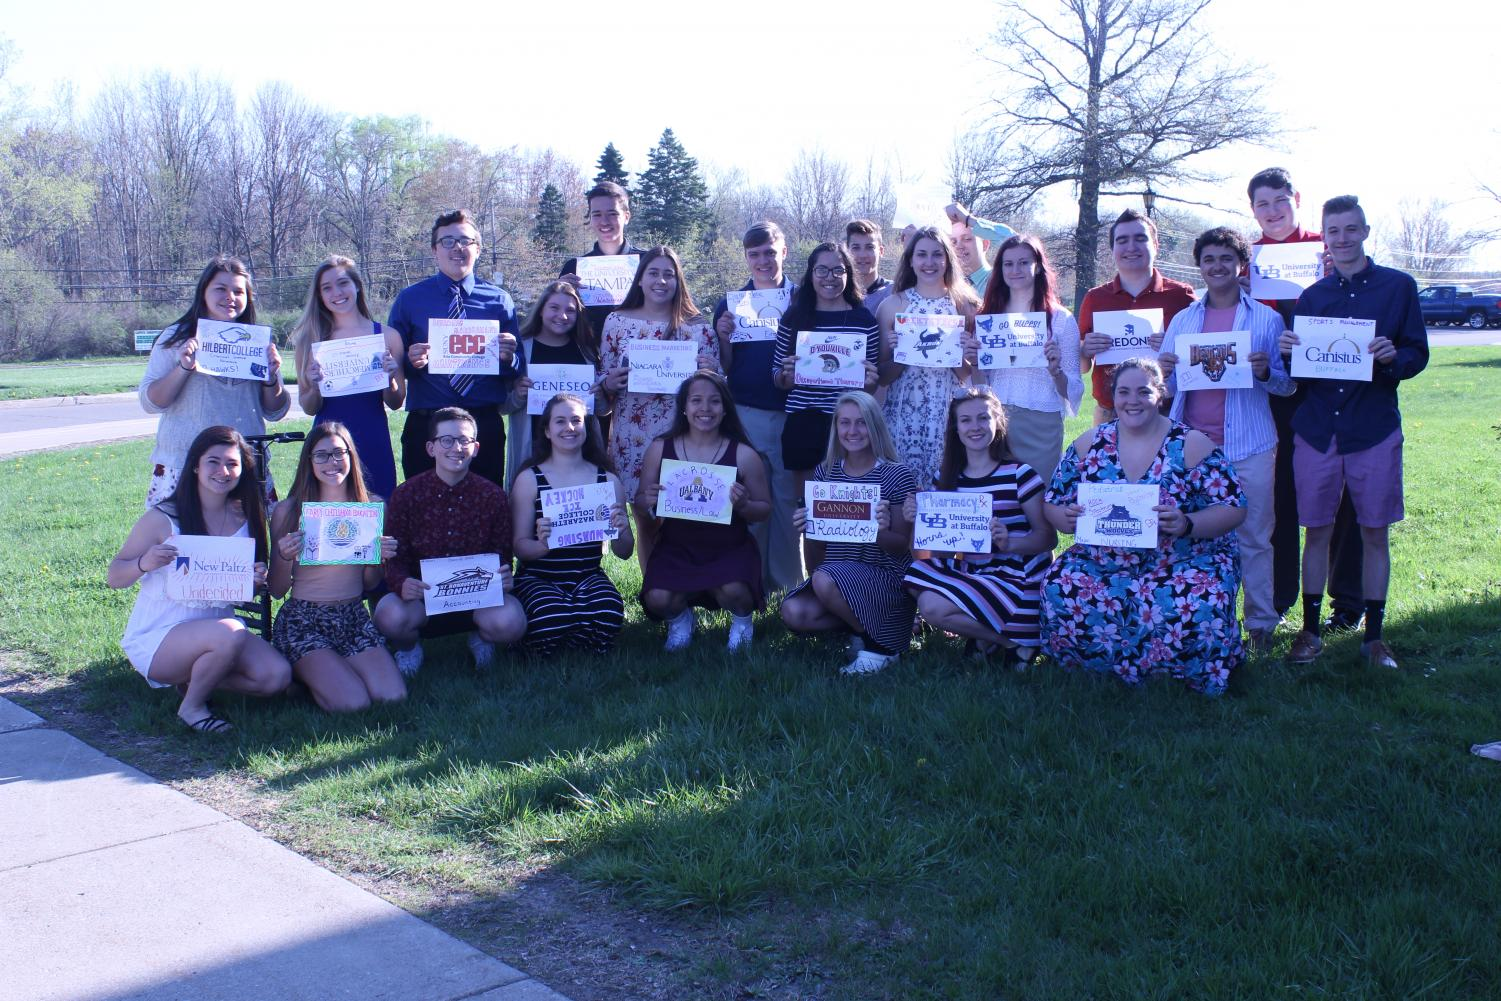 Academy of Business and Finance Seniors holding signs of their college choice